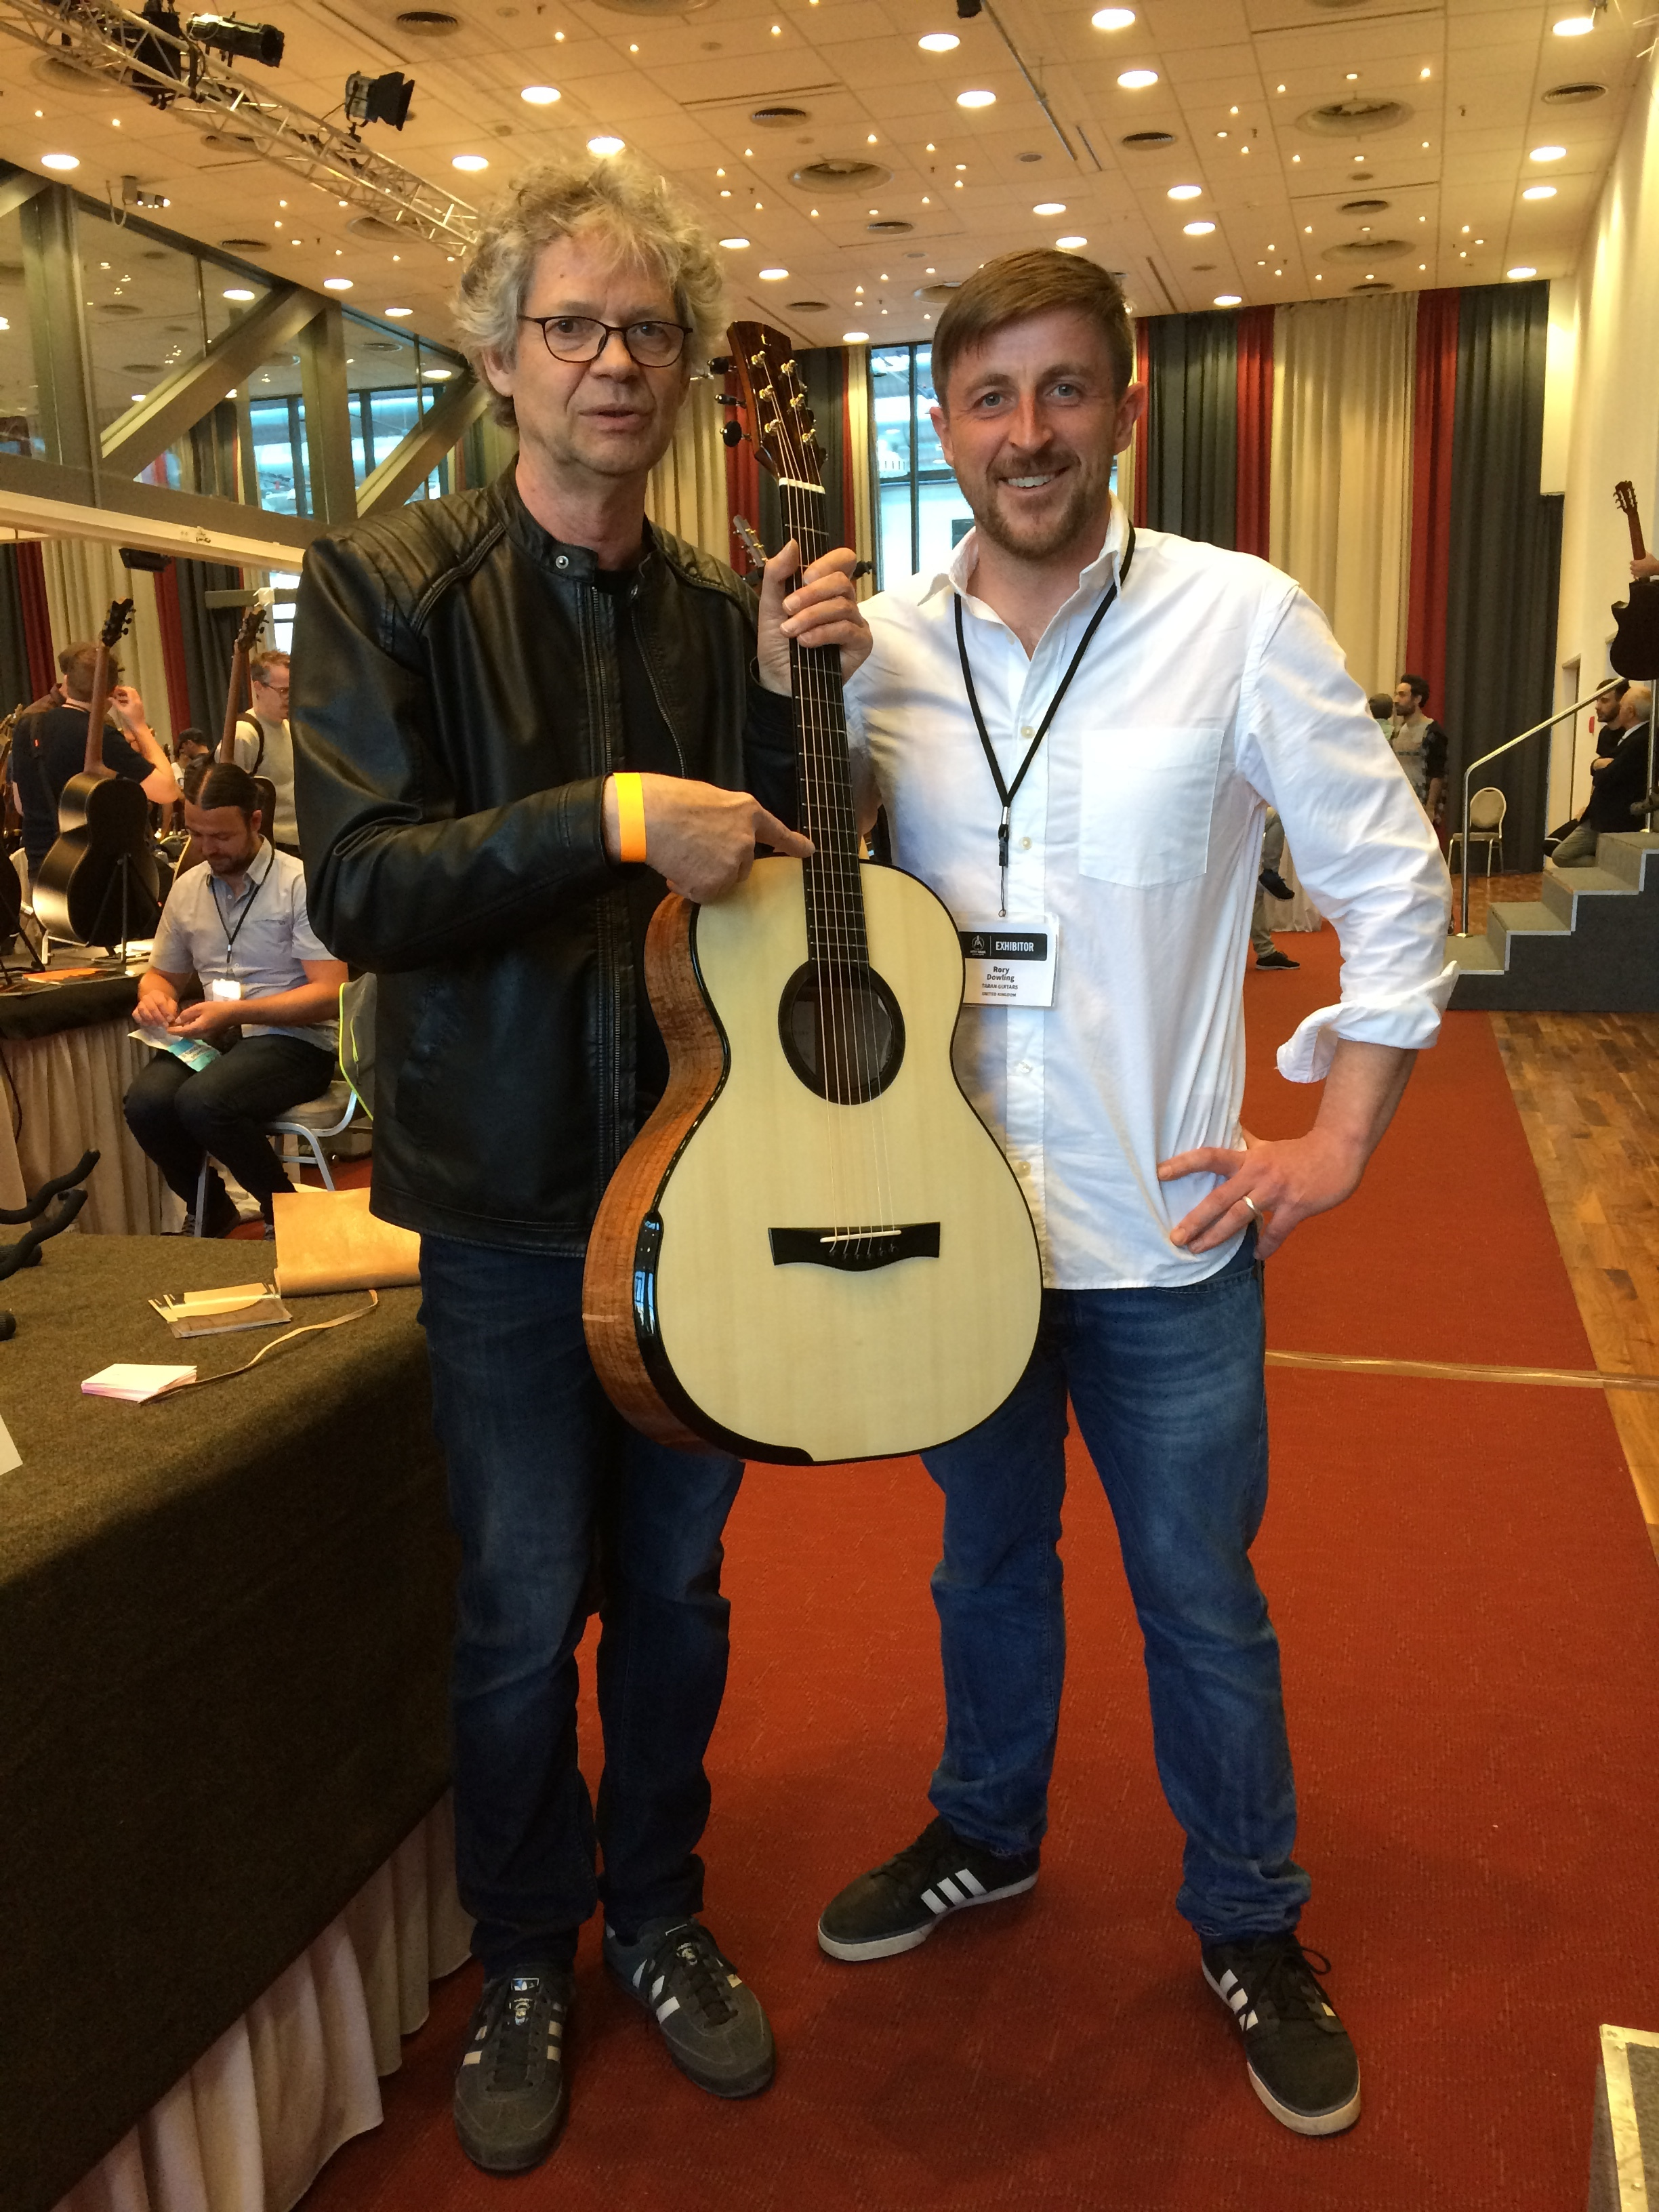 Gerd Anke of the Plek company. He said that the fret work on this Tirga Mhor was some of the best he had ever seen. Thanks Gerd, that is a serious compliment!